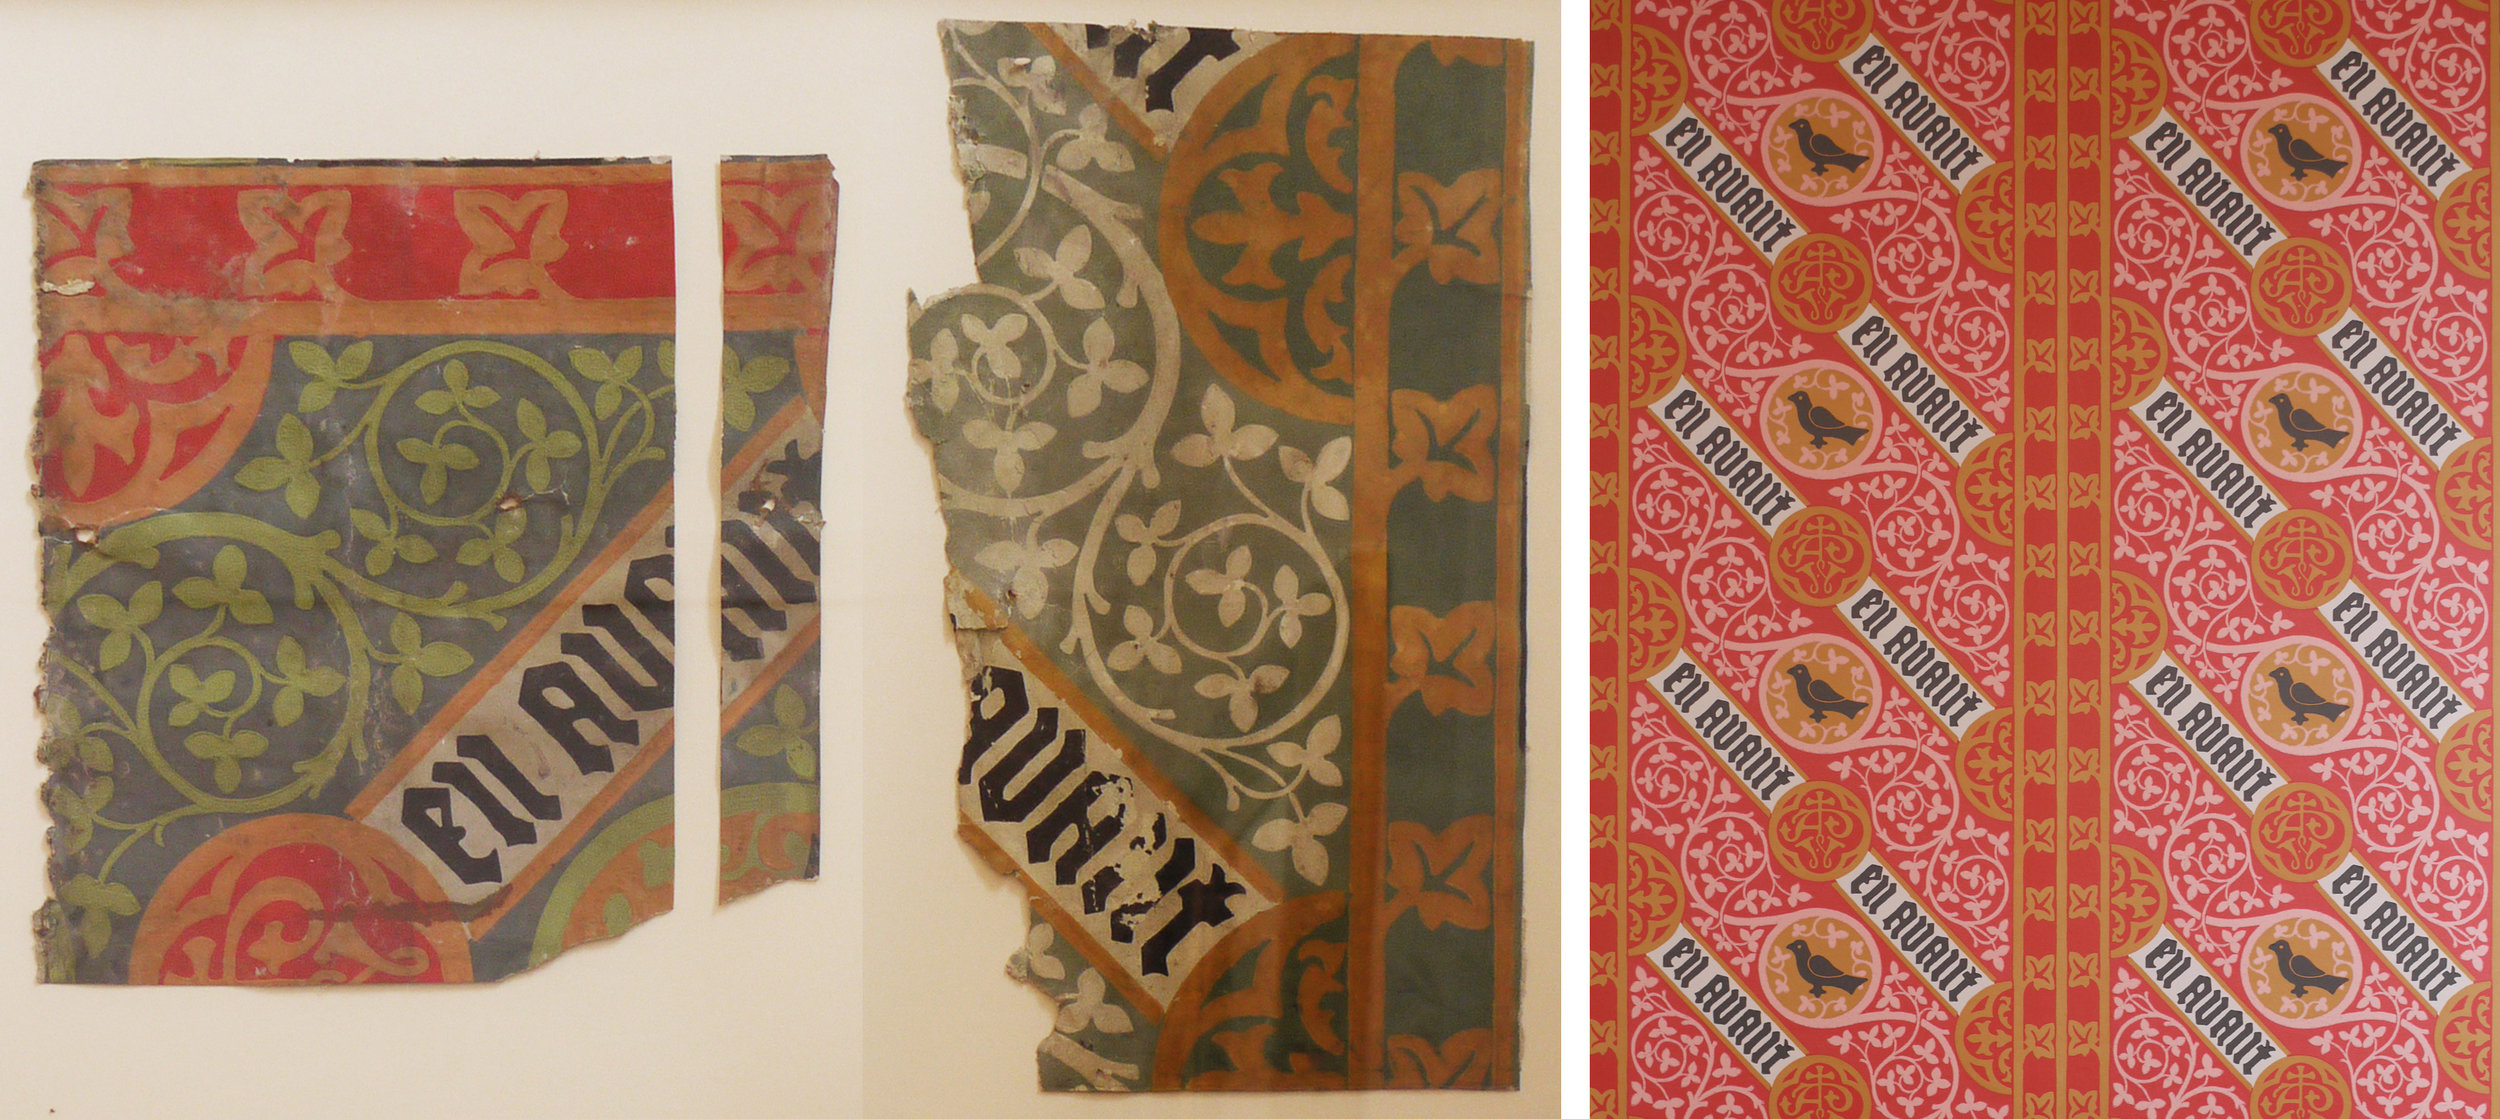 Wallpaper fragments and the reprinted version in a different colourway